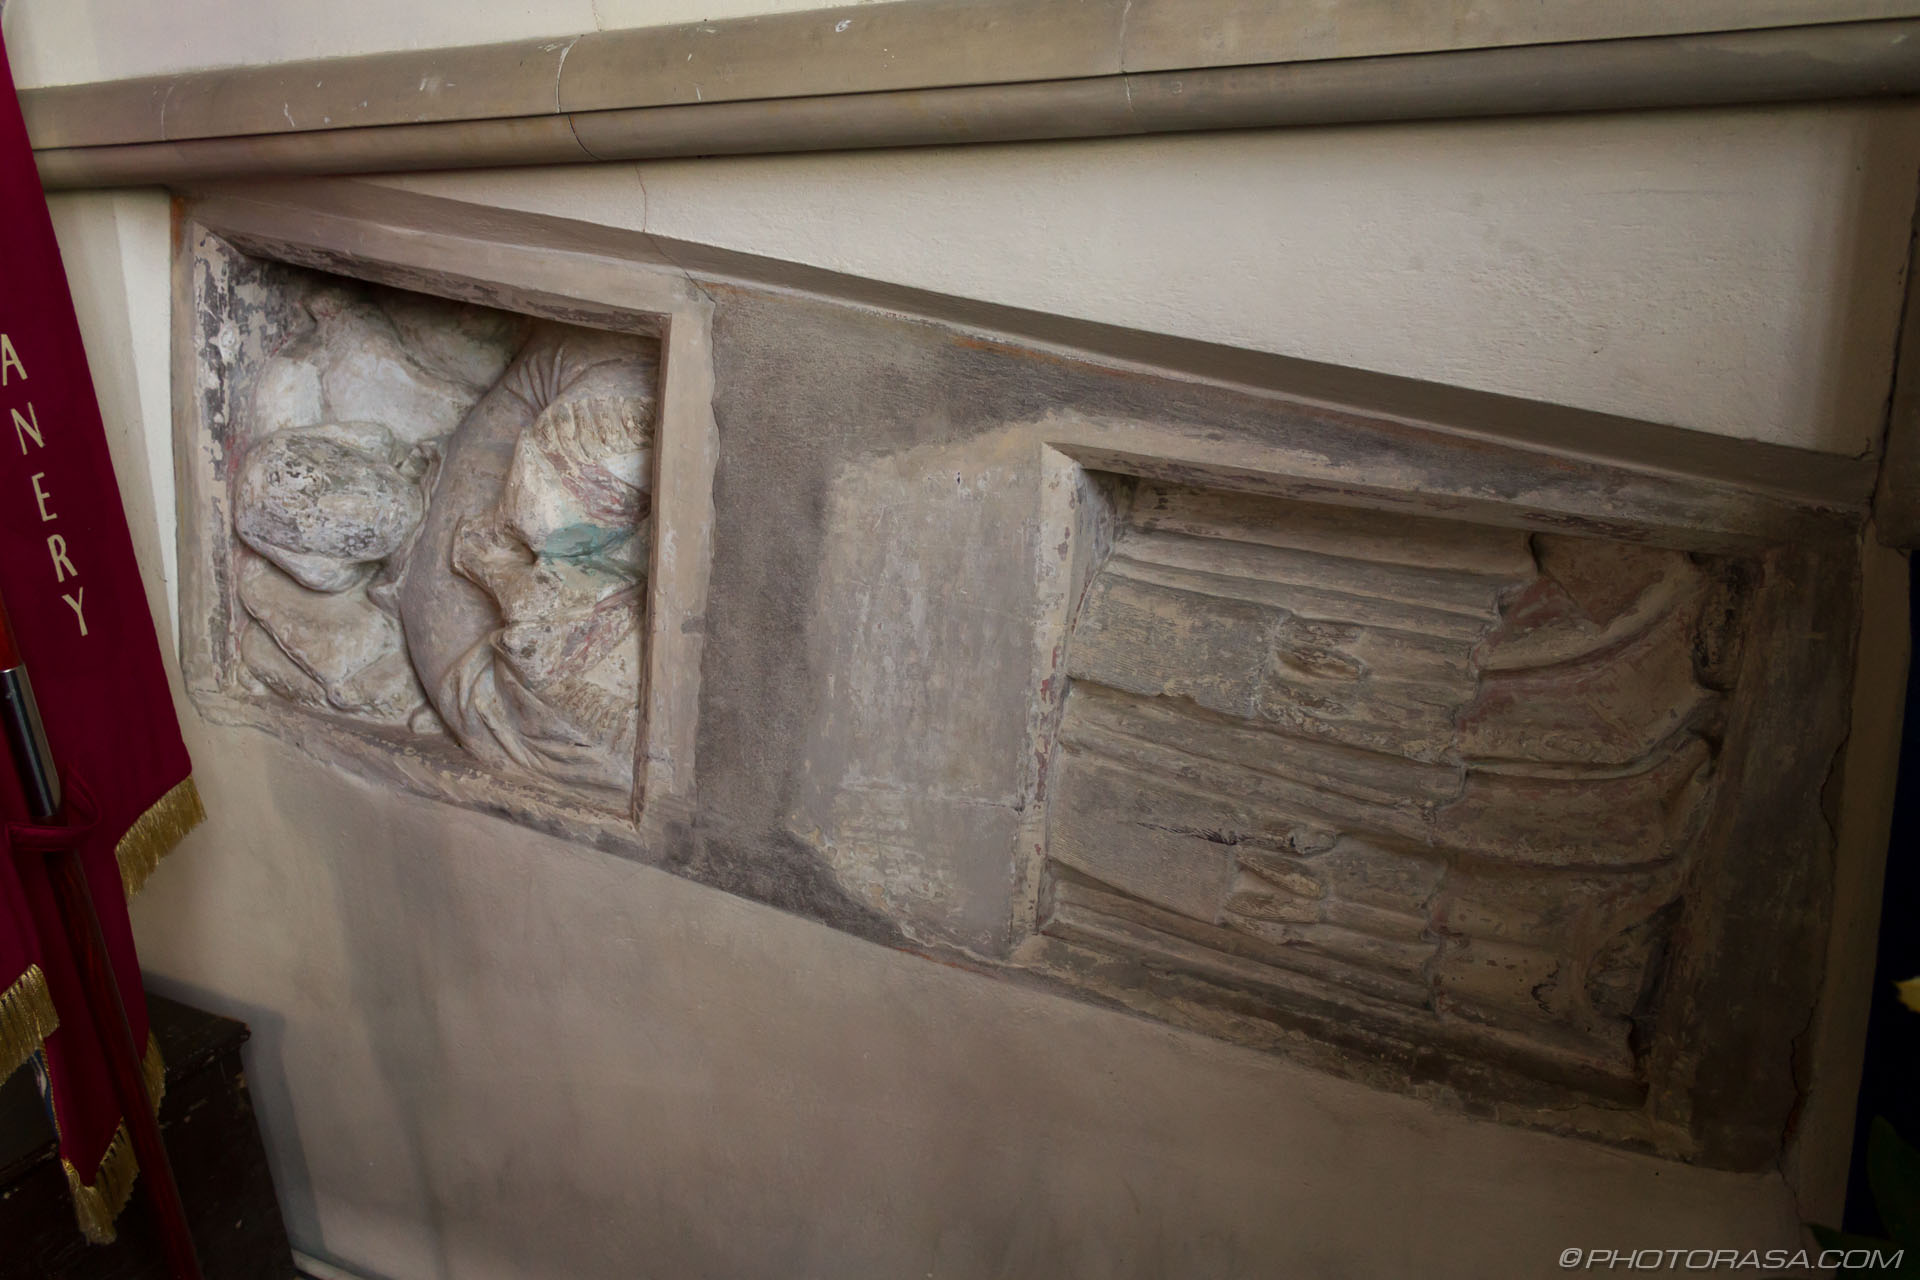 http://photorasa.com/st-marys-church-in-lenham/stone-coffin-embedded-in-church-wall/